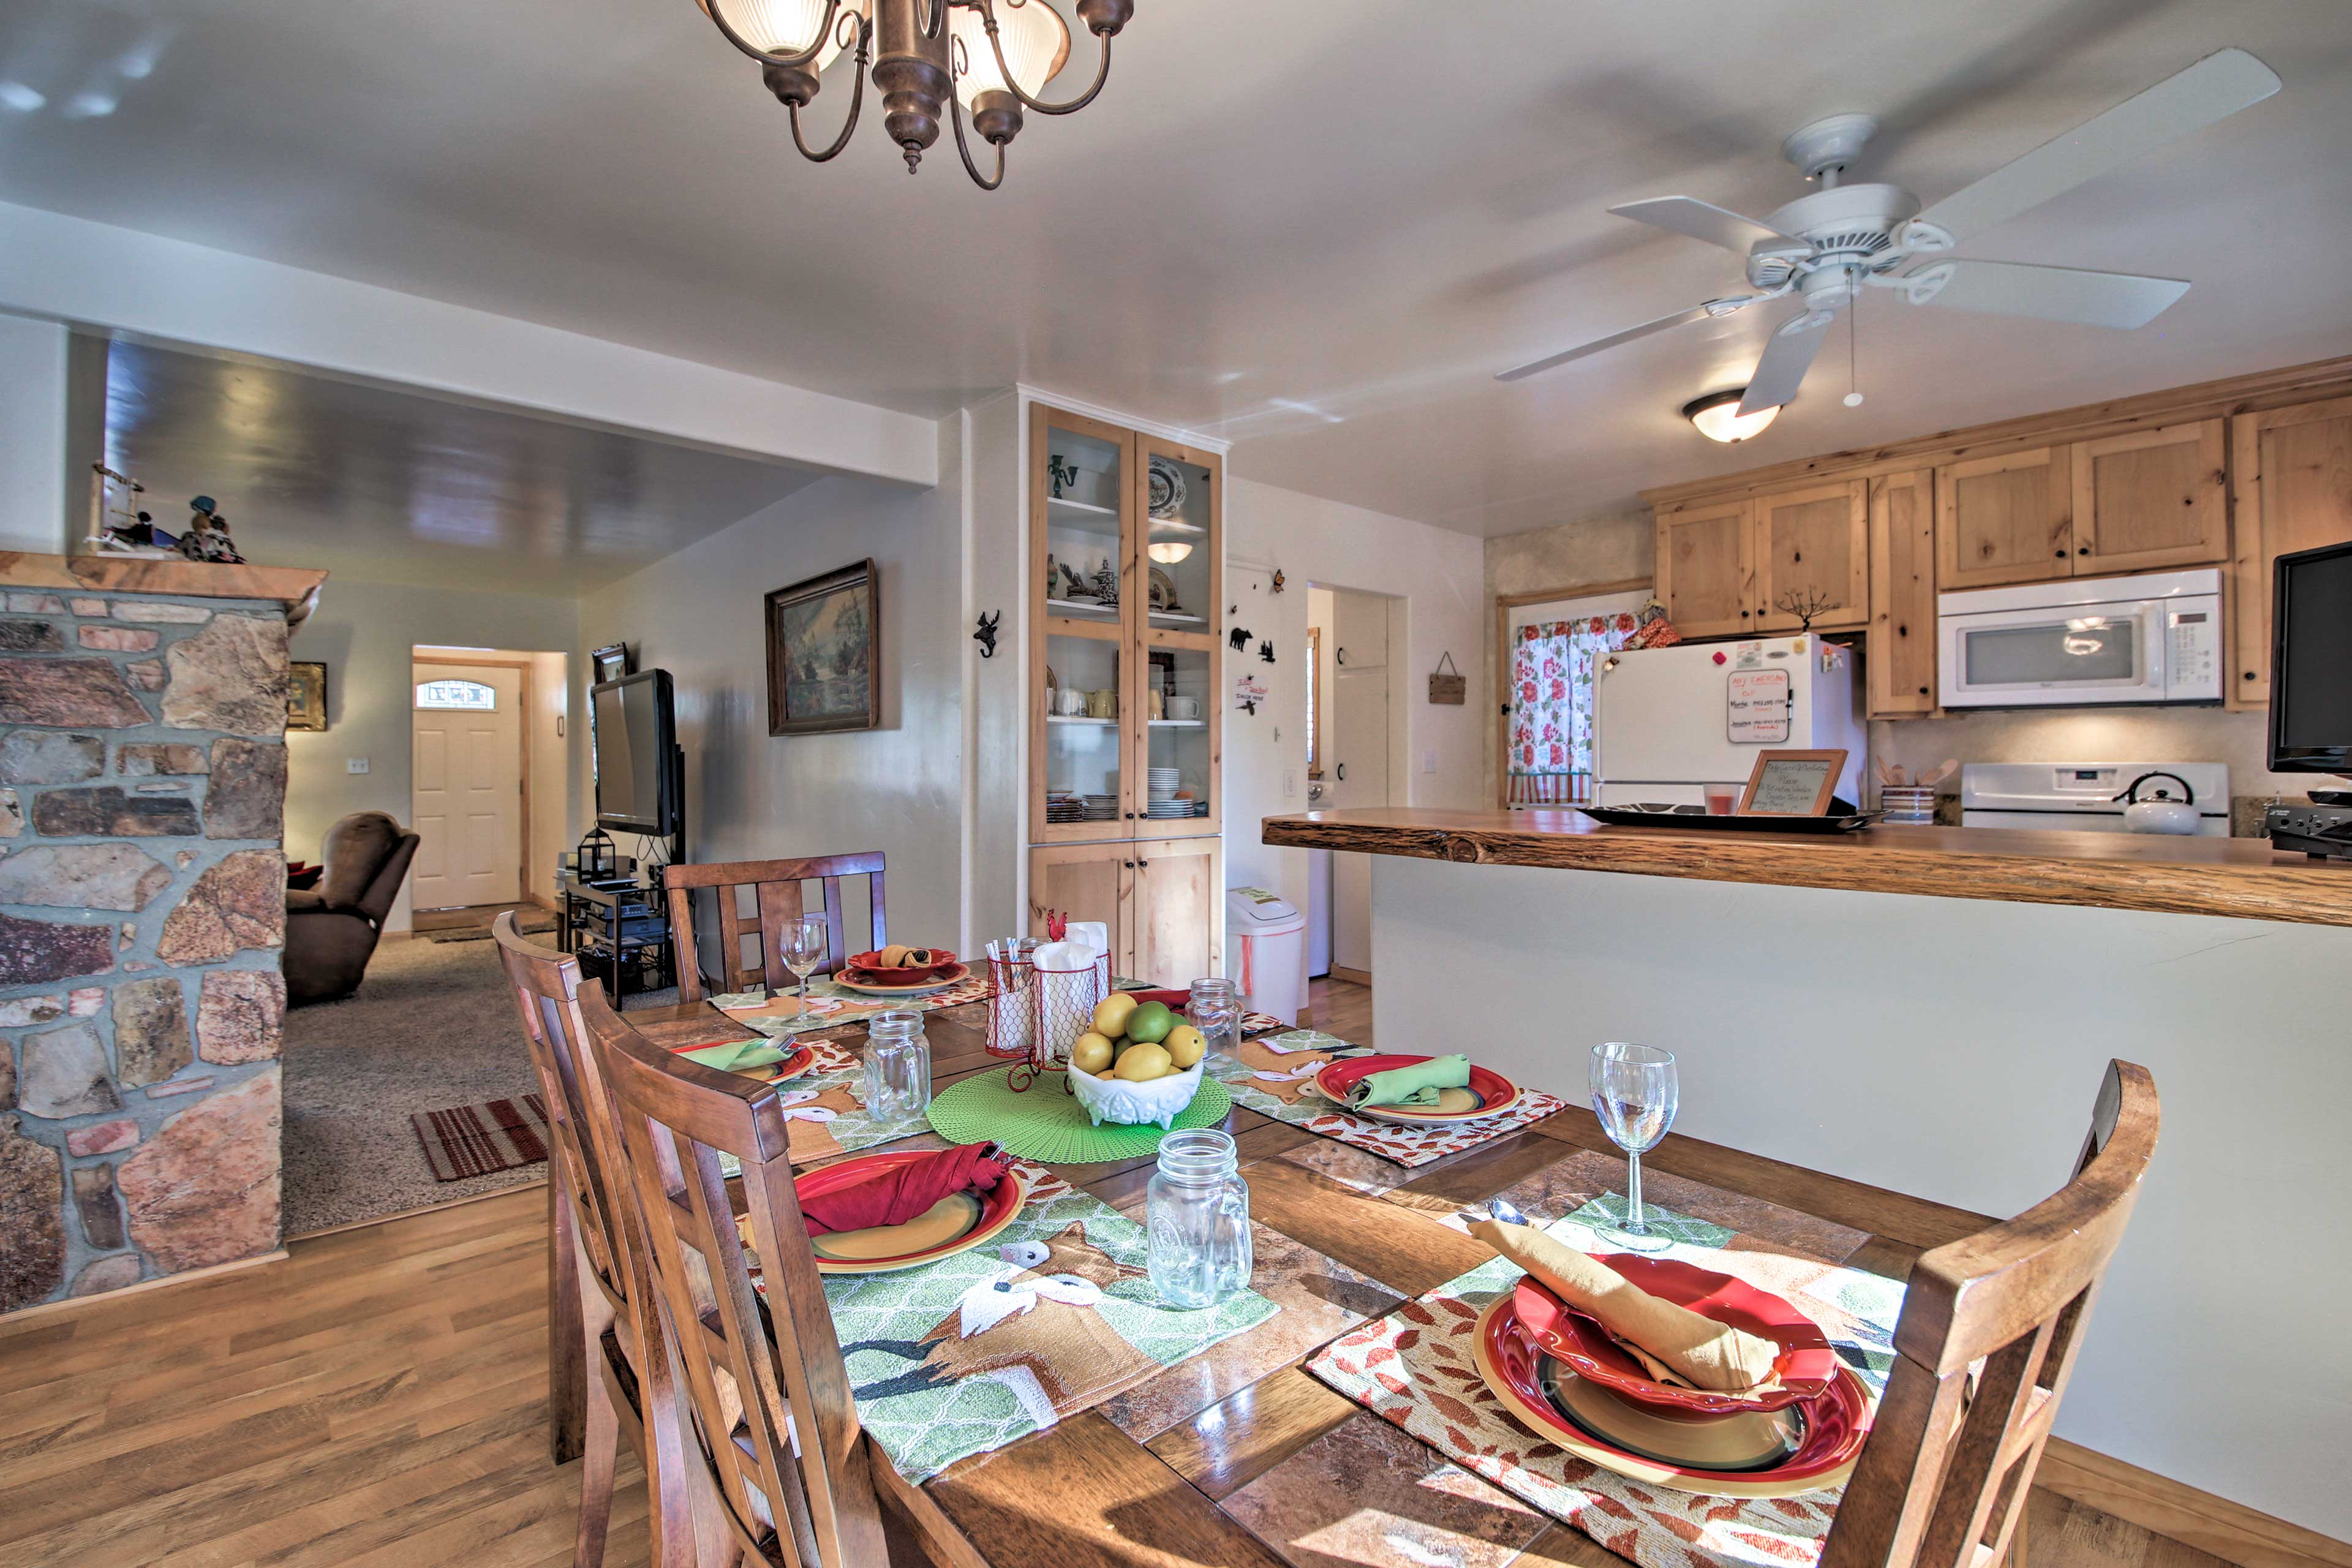 Through the open doorway, you'll find the dining area and kitchen.